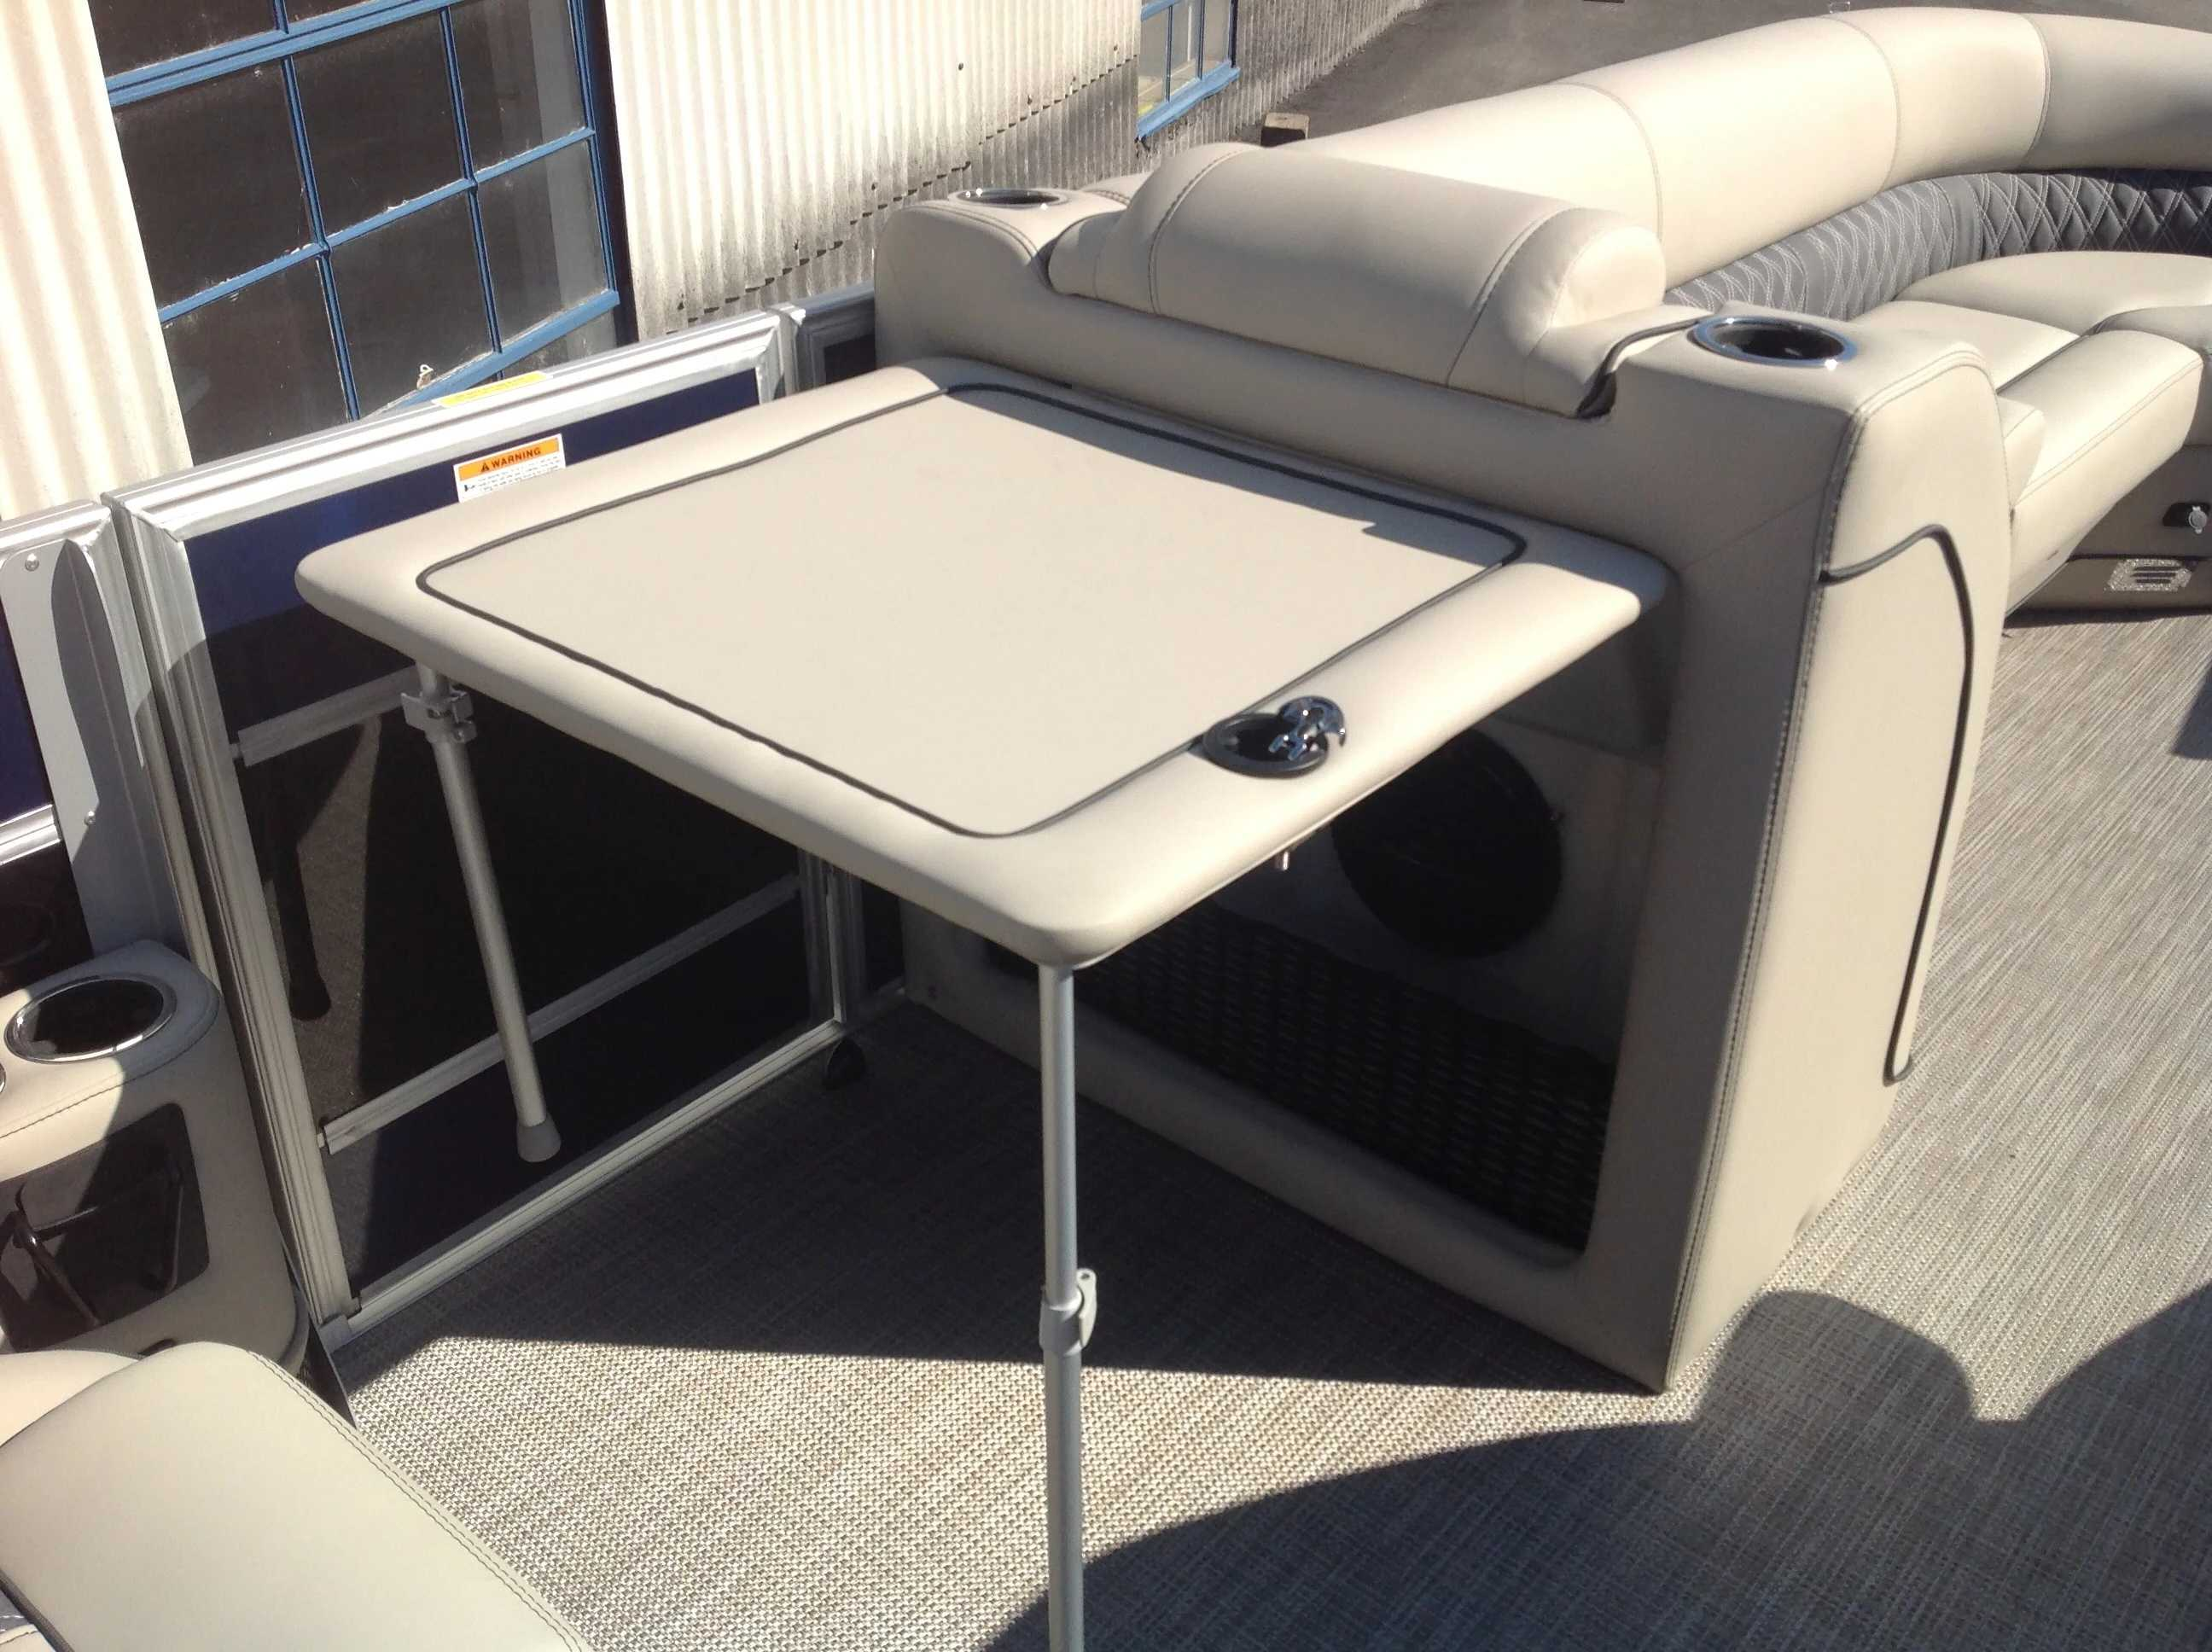 2021 Barletta boat for sale, model of the boat is L25UC & Image # 11 of 17